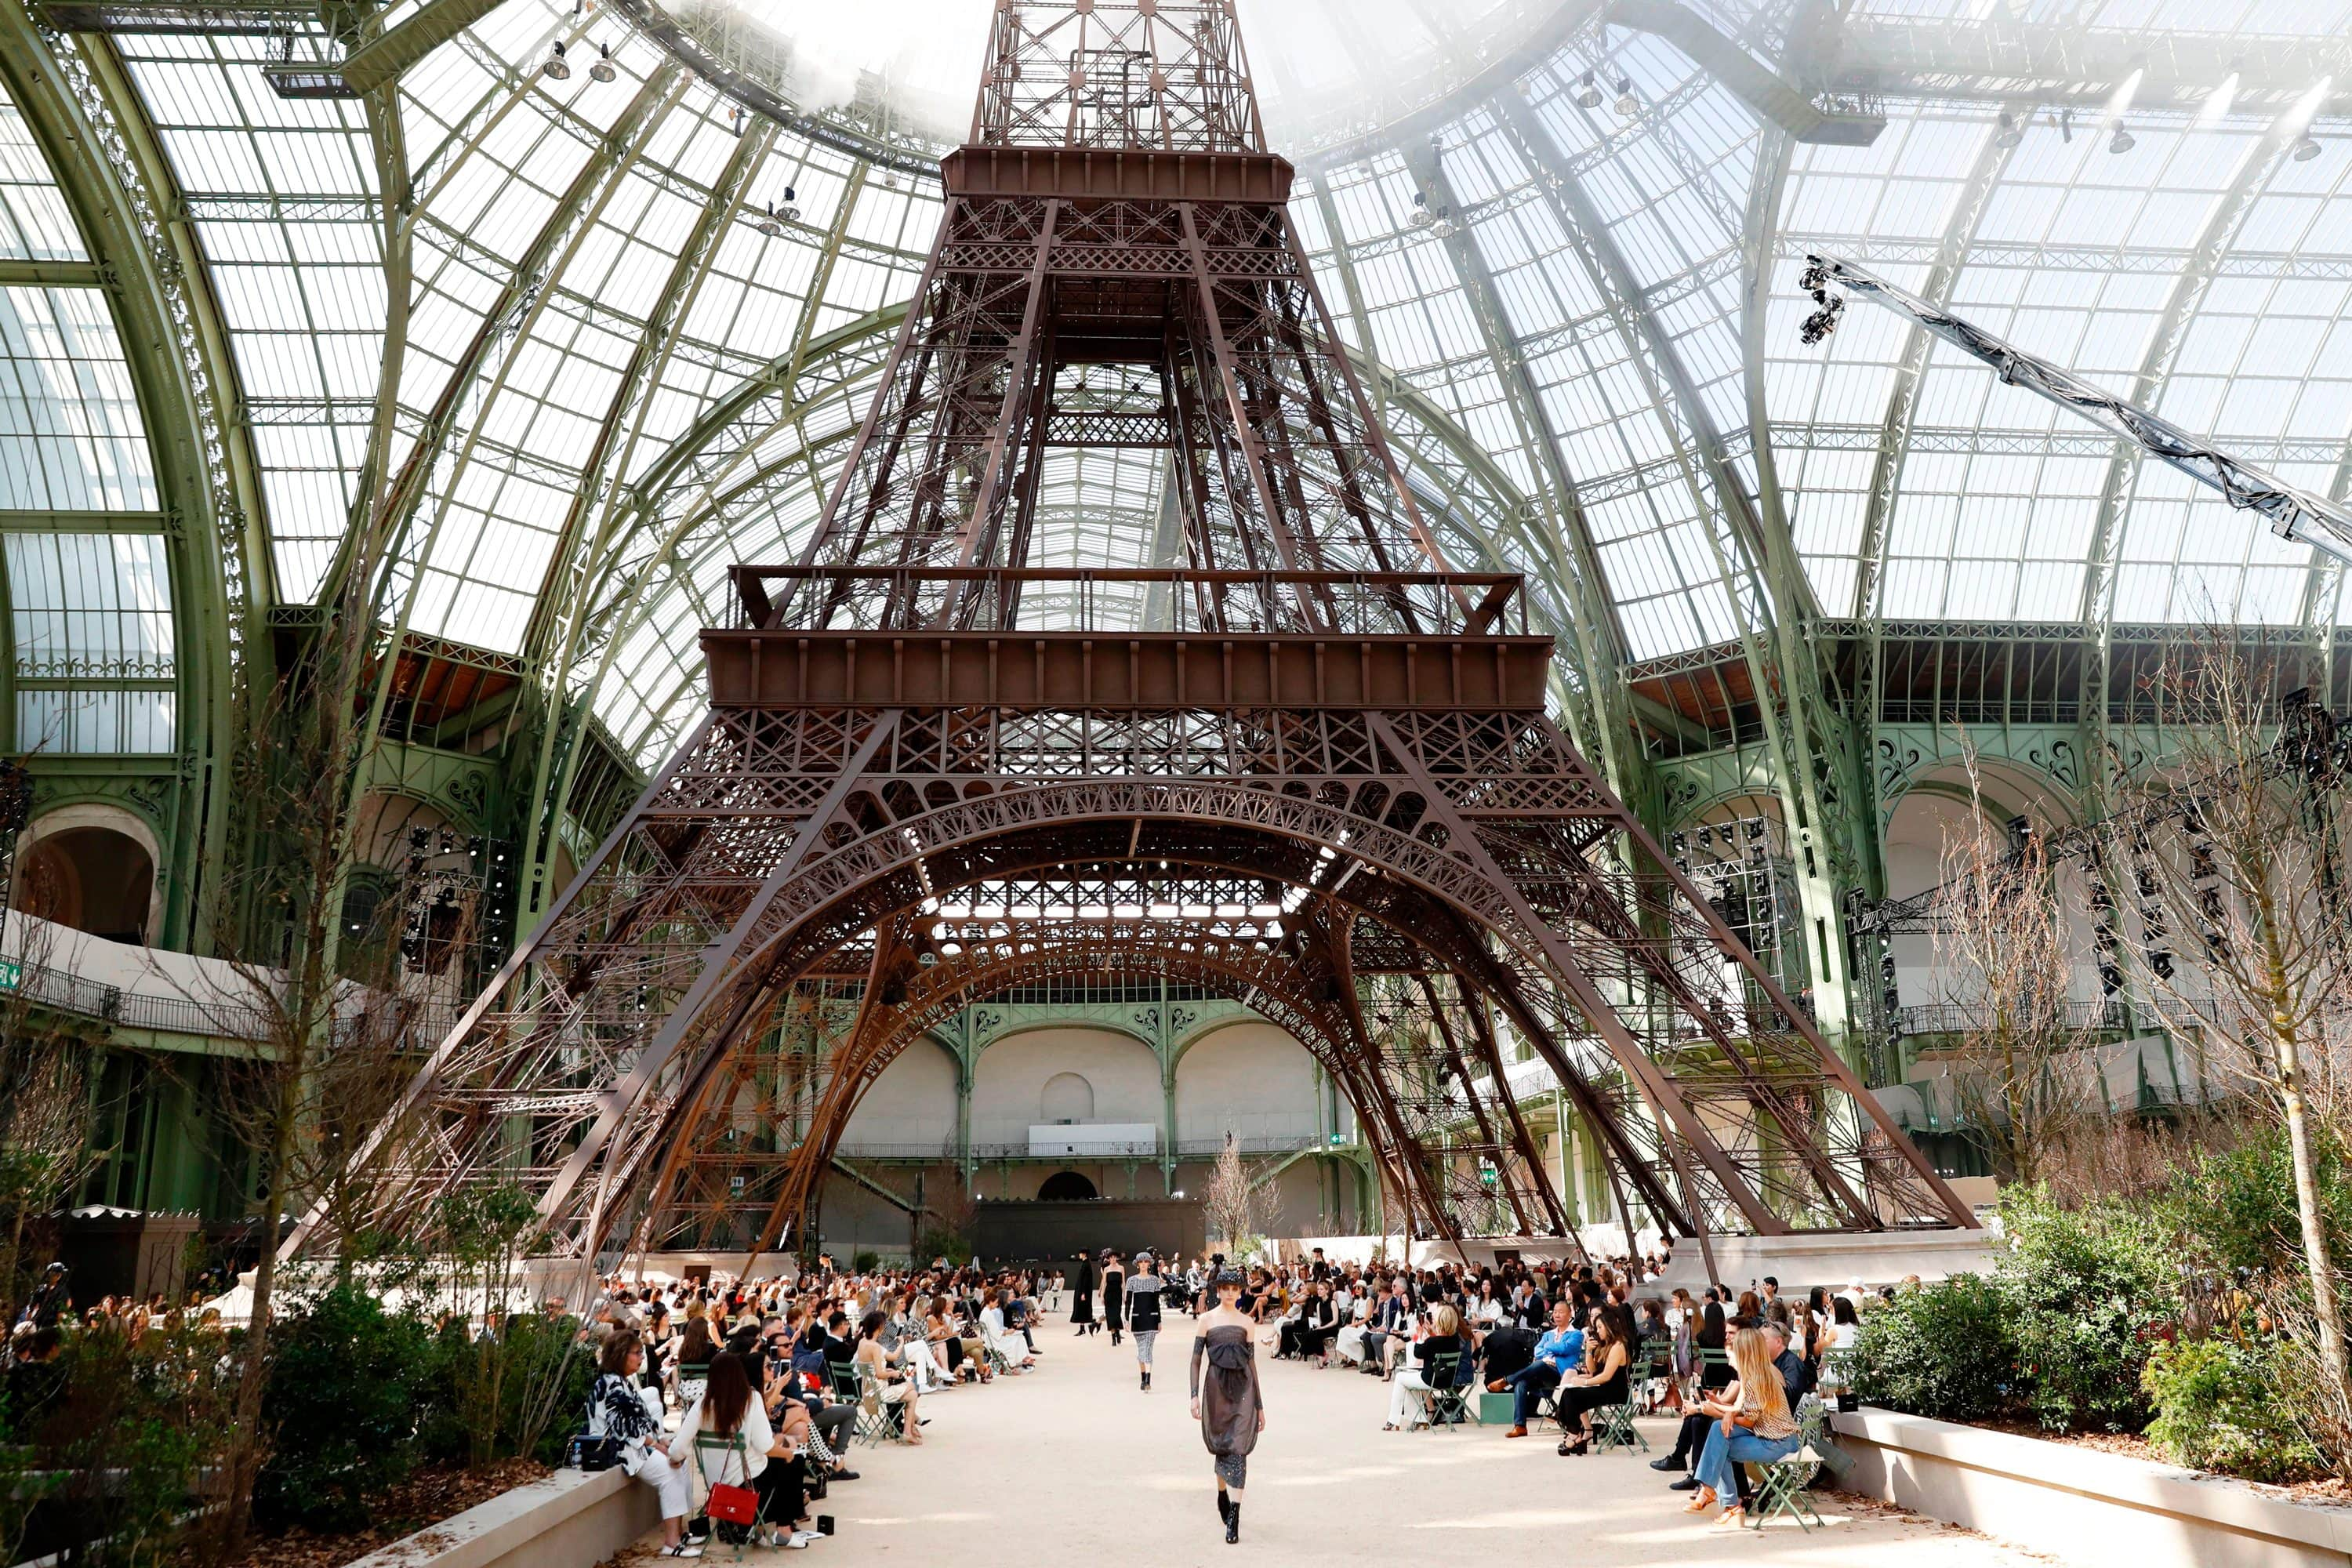 A miniature version of the Eiffel Tower